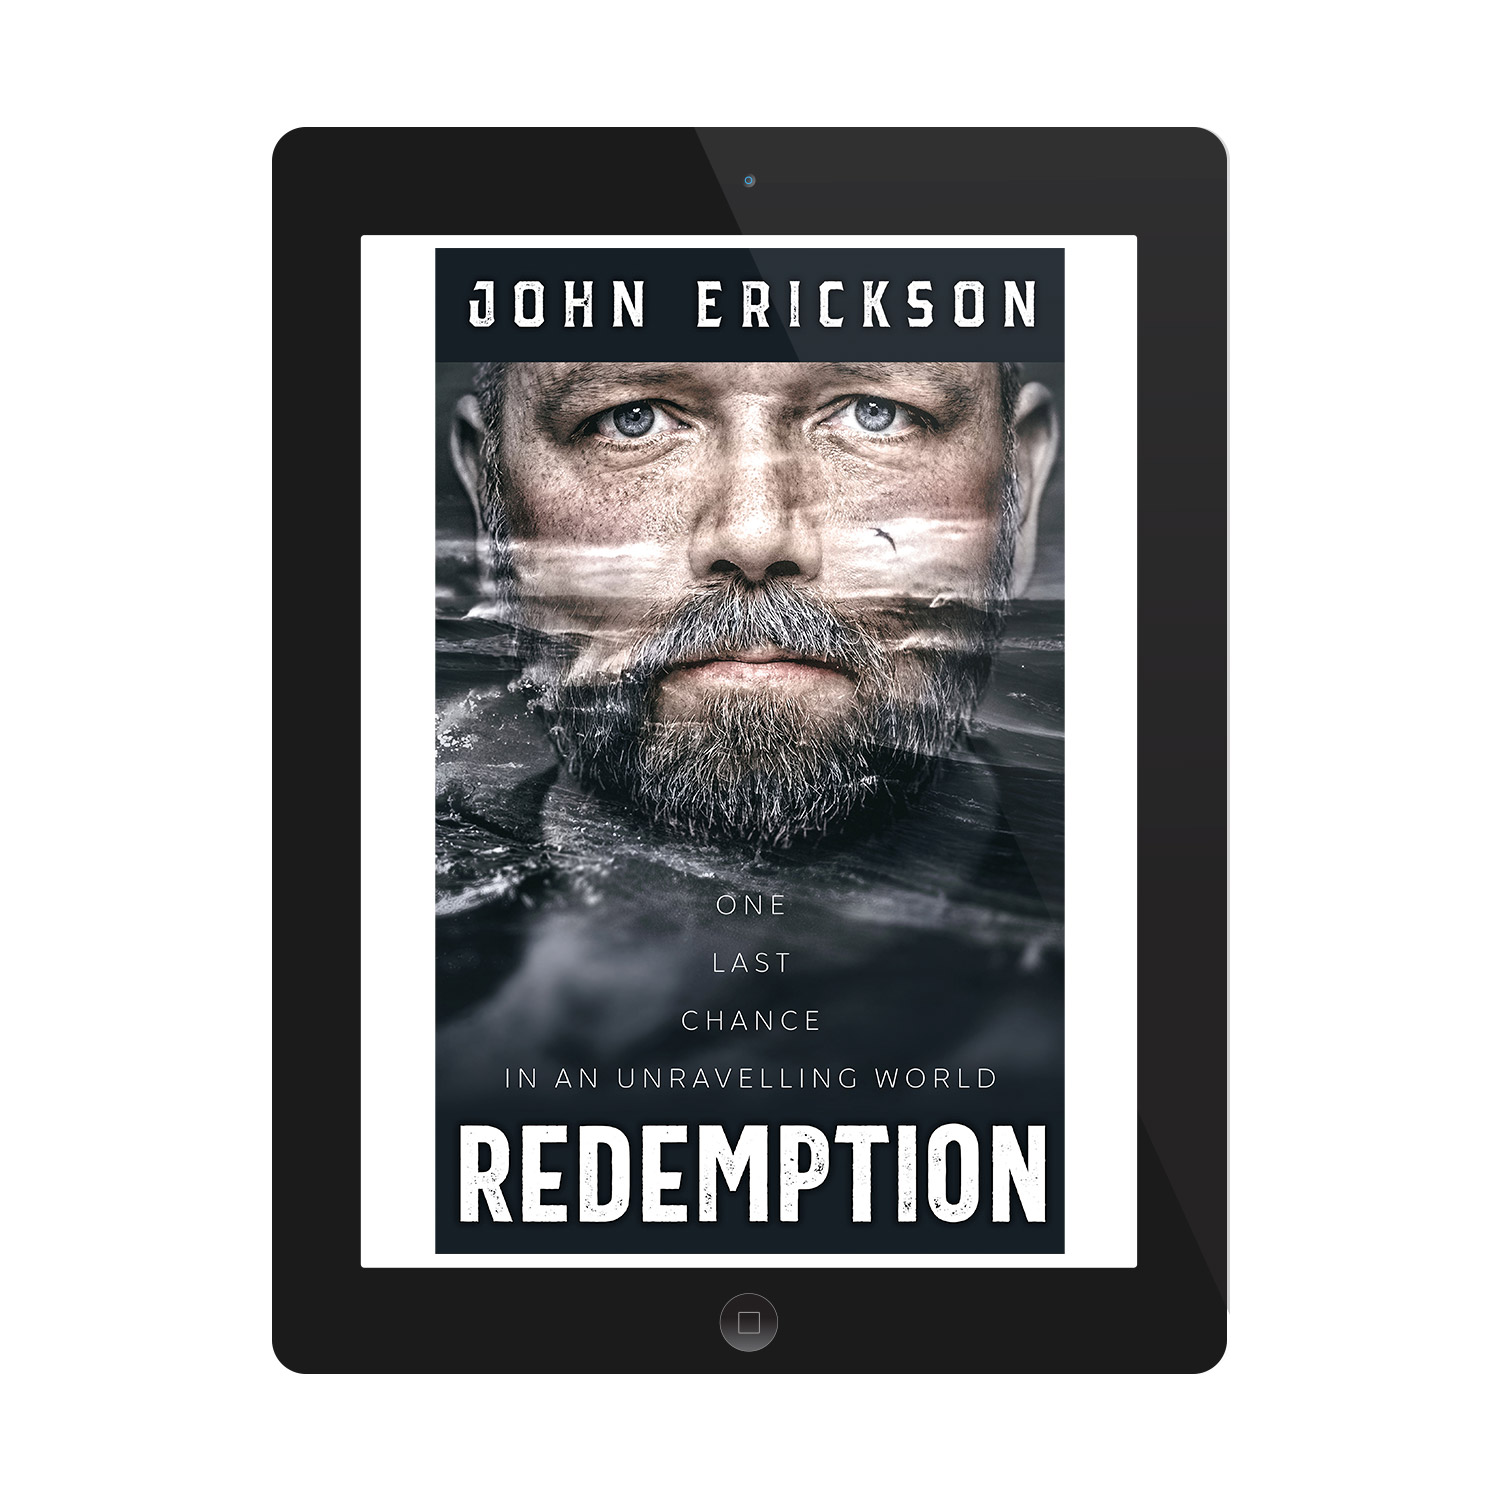 'Redemption' is a unique thriller novel by debut author, John Erickson. The book cover and interior were designed by Mark Thomas, of coverness.com. To find out more about my book design services, please visit www.coverness.com.